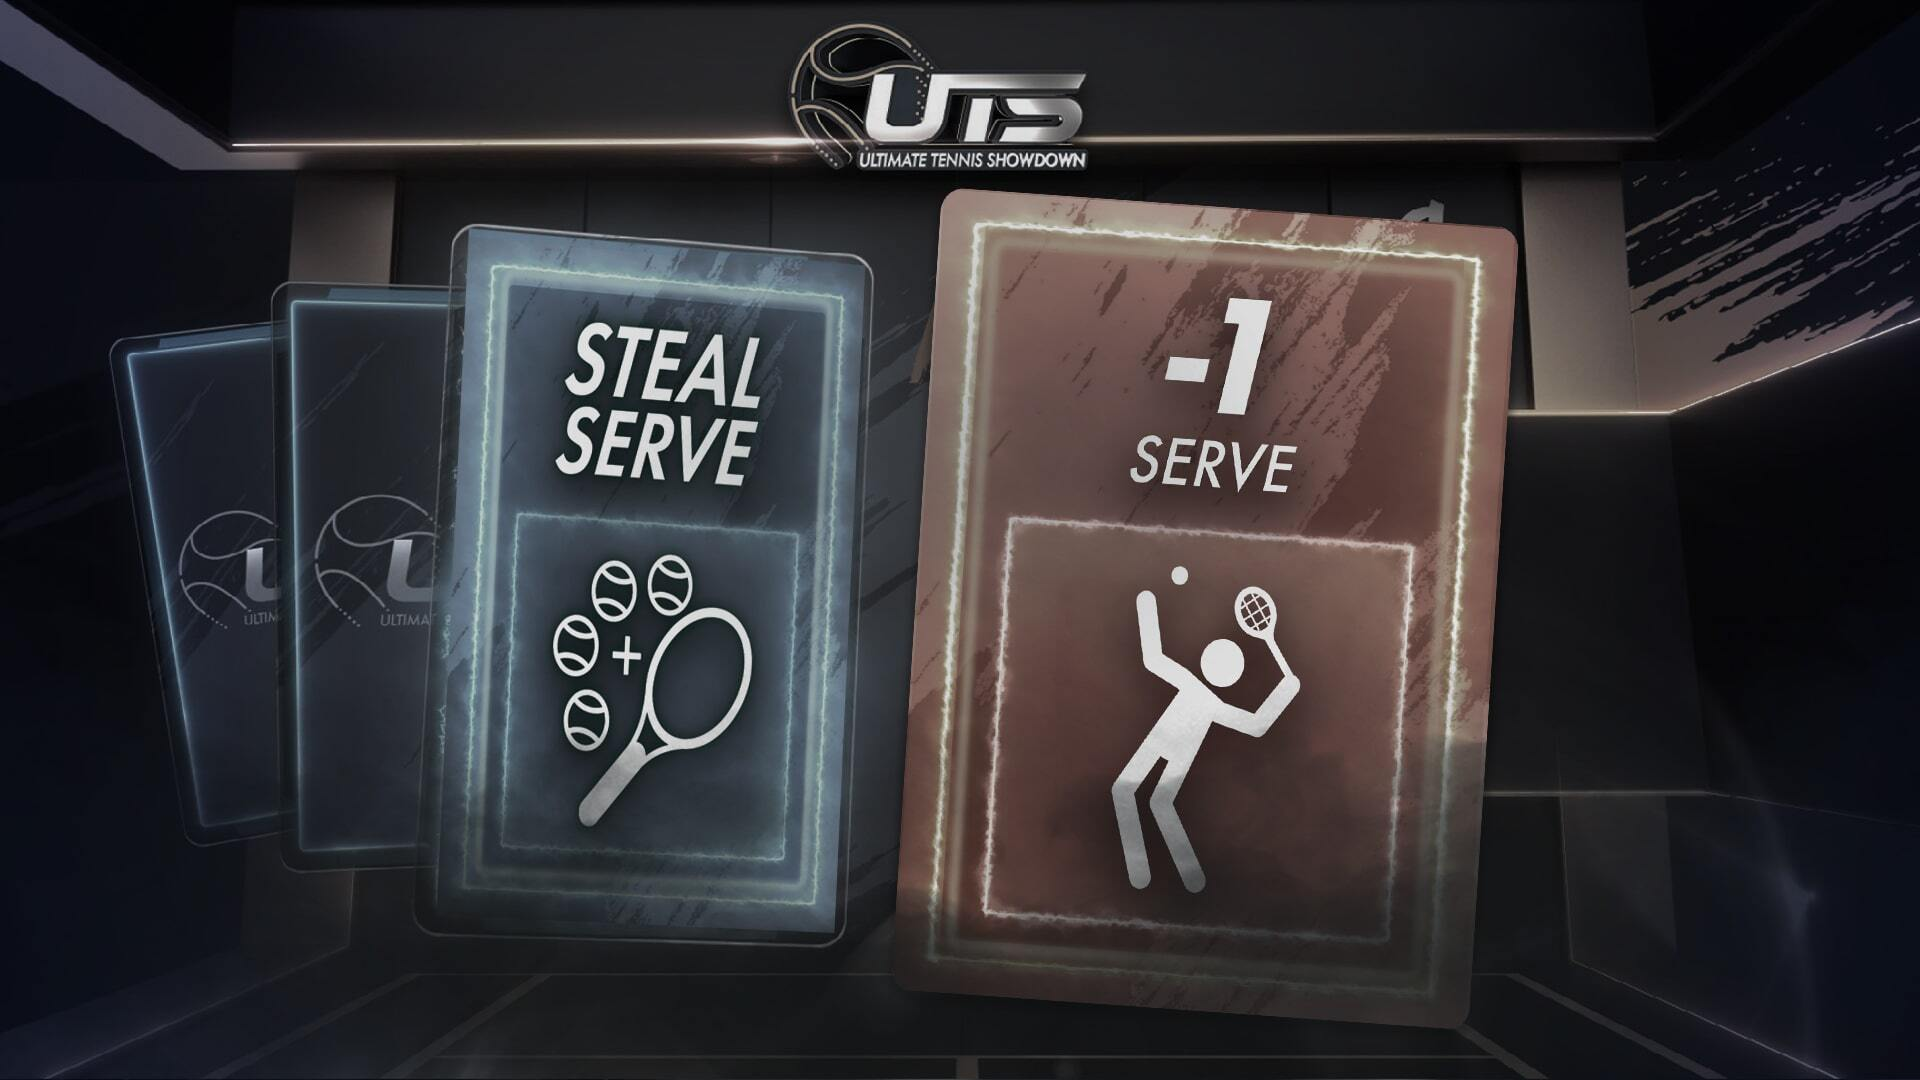 UTS Live gamification tennis